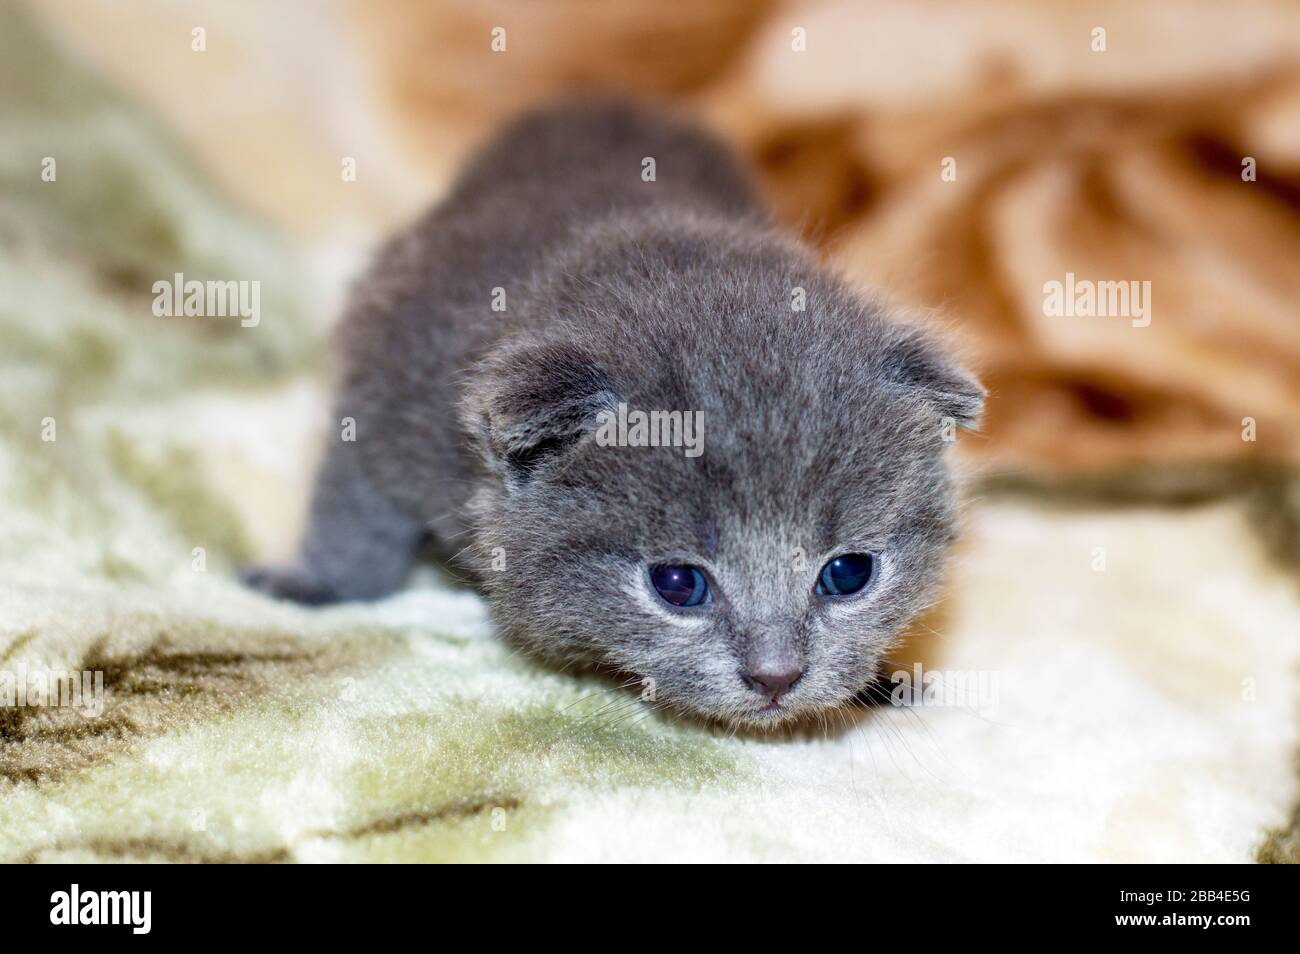 4 Weeks Old Kitten High Resolution Stock Photography And Images Alamy